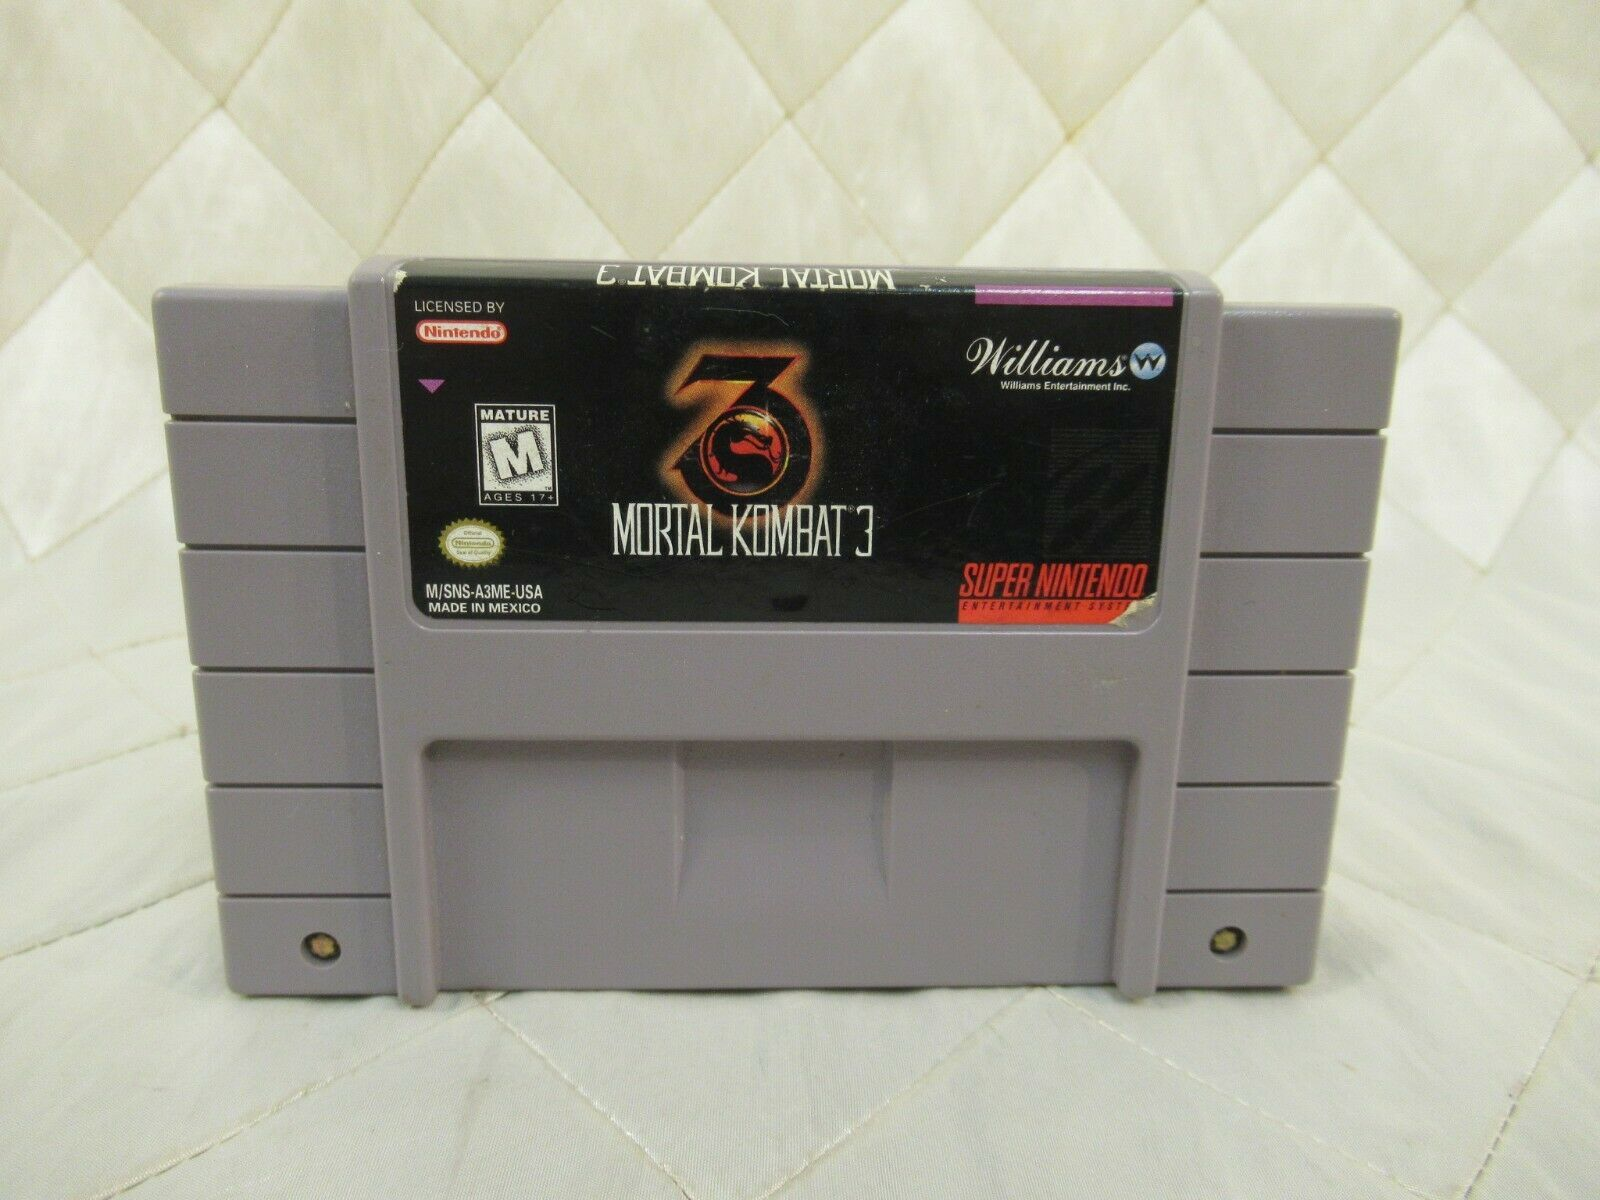 Mortal Kombat 3 (Super Nintendo Entertainment System, 1995) SNES Video Game